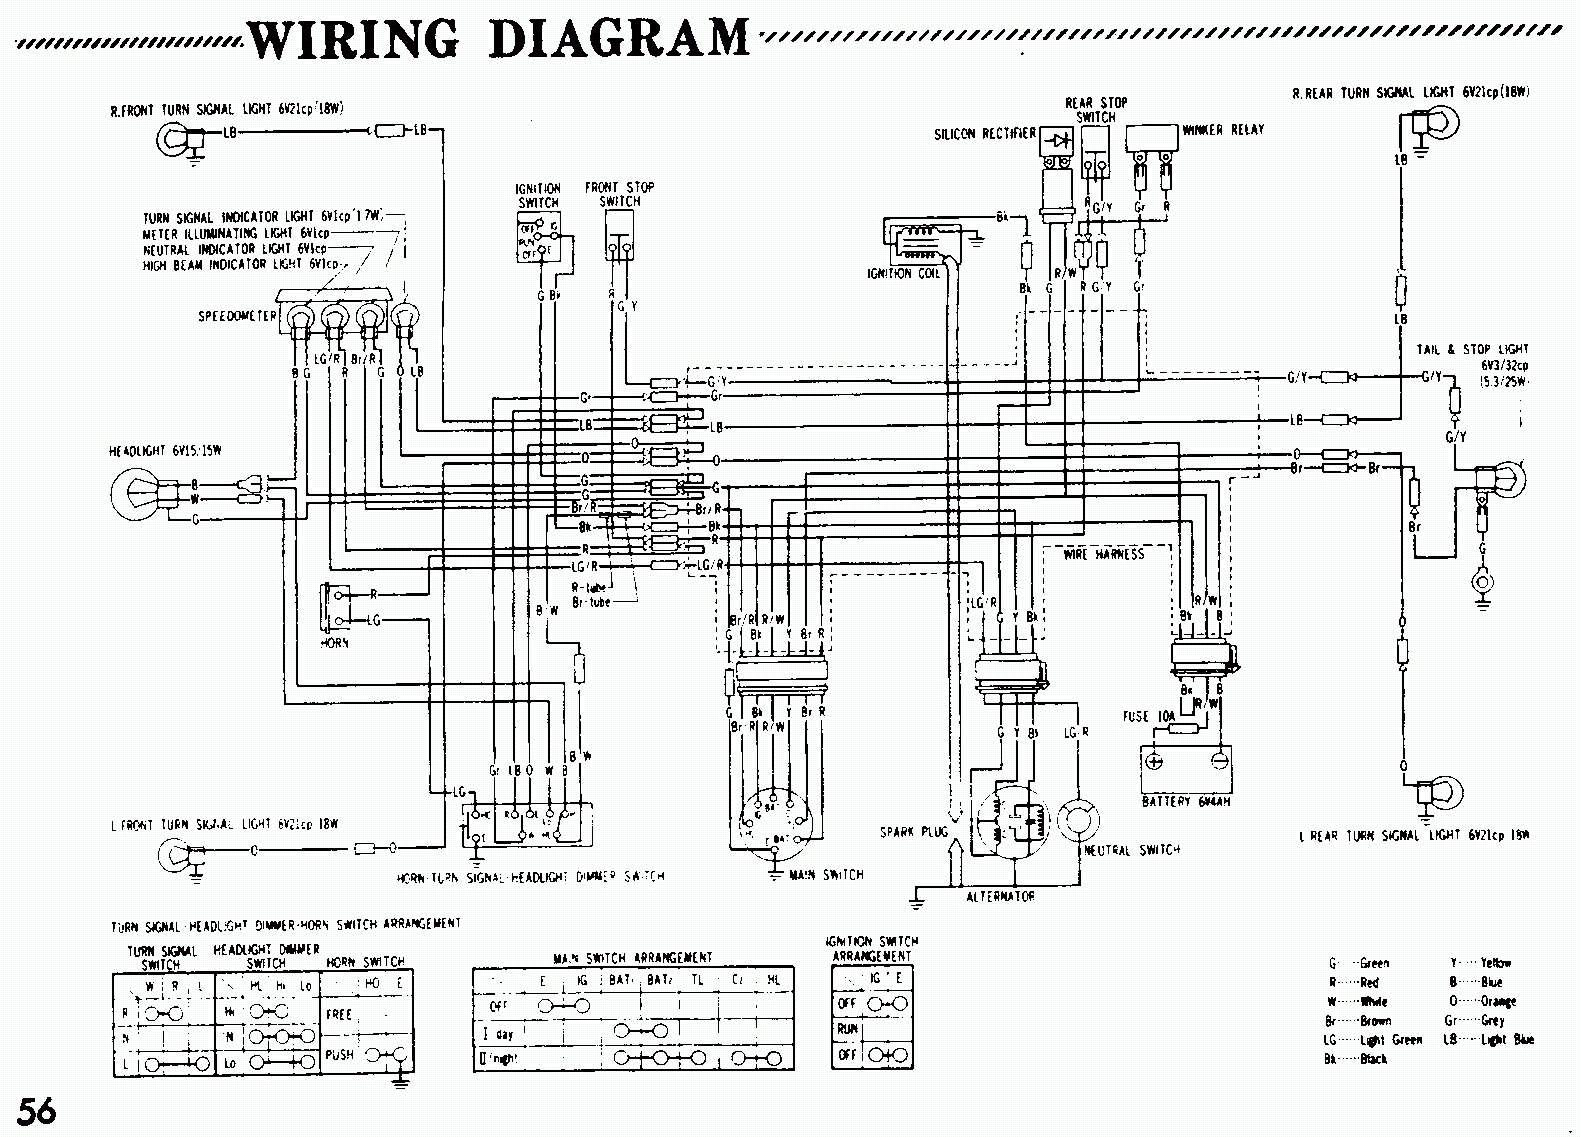 honda ct70 1976 wiring diagram honda ct70 wiring diagram 1976 honda ct70 wiring diagram \u2022 free honda mr 50 wiring diagram at panicattacktreatment.co